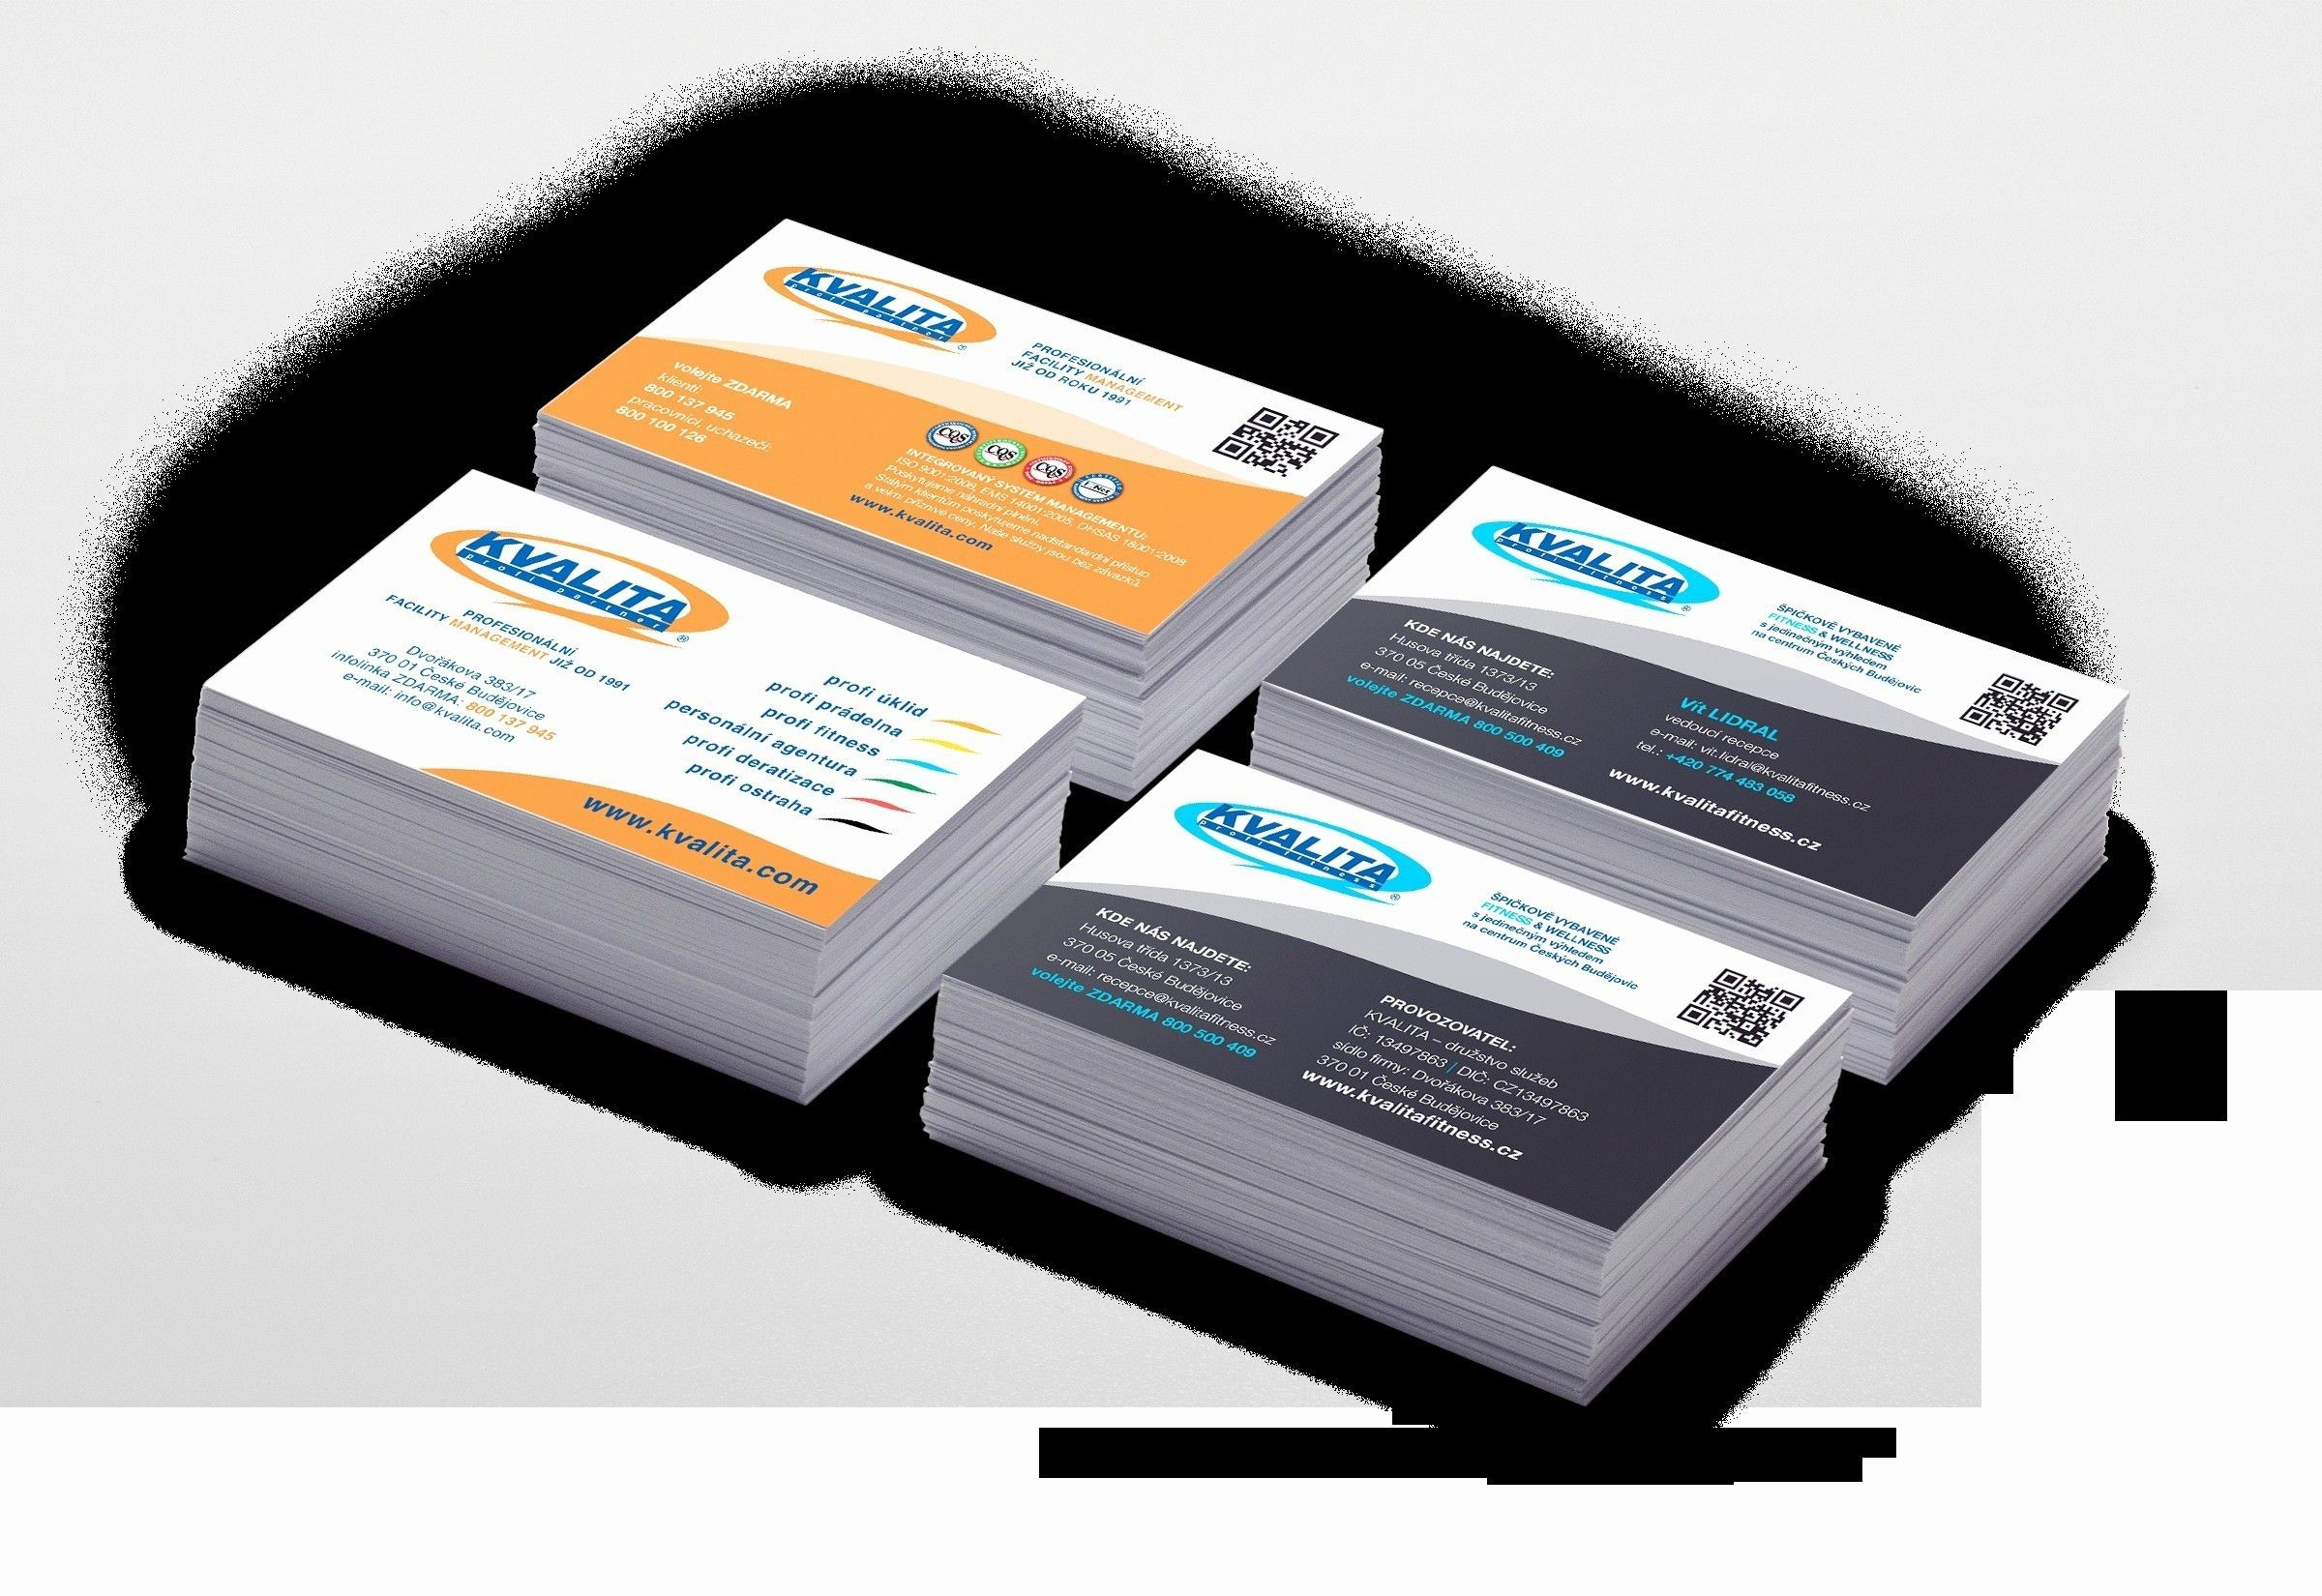 New Realtor Business Cards Templates Fresh Business Cards Personal Business Cards Dj Business Cards